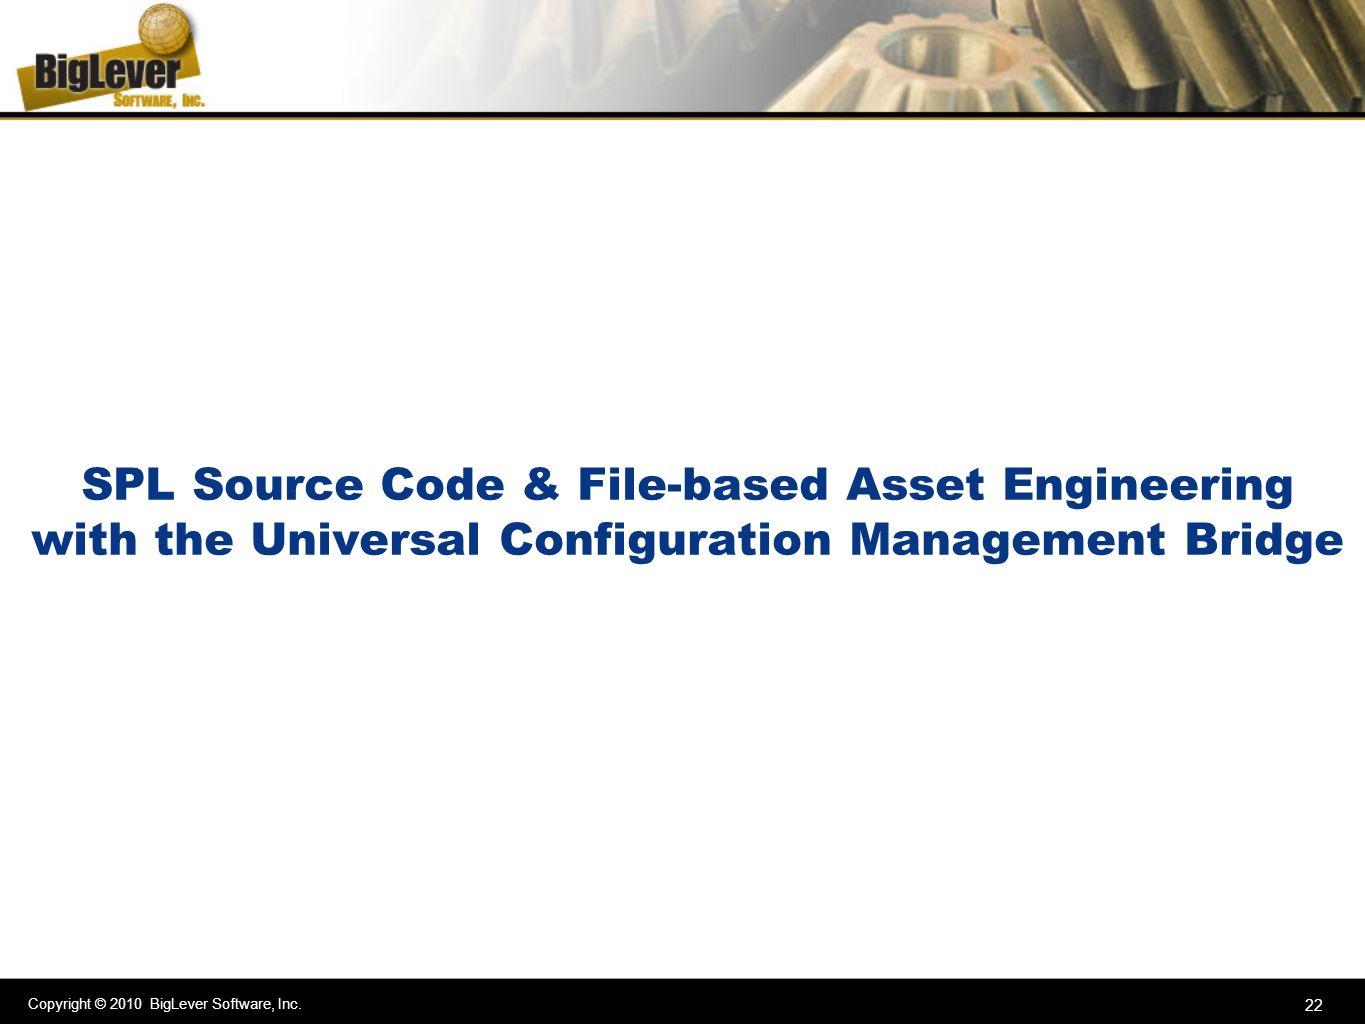 SPL Source Code & File-based Asset Engineering with the Universal Configuration Management Bridge